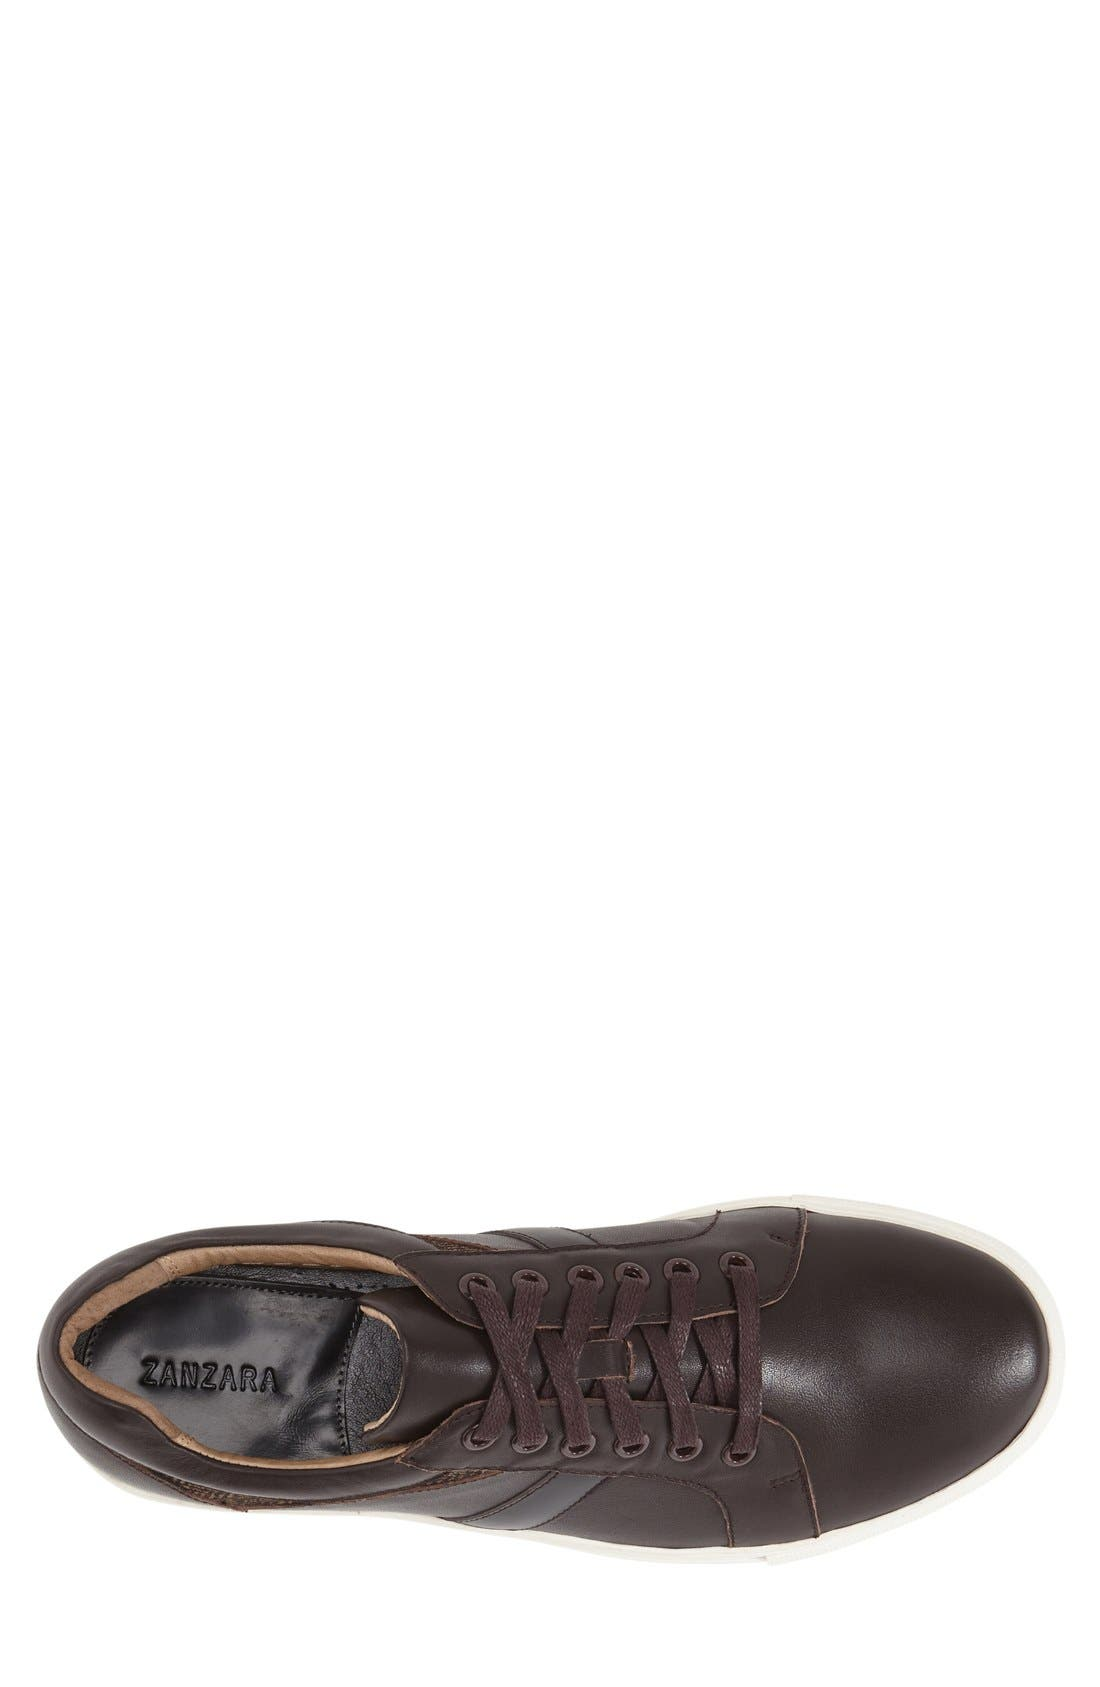 'Mixer' Sneaker,                             Alternate thumbnail 3, color,                             Brown Leather